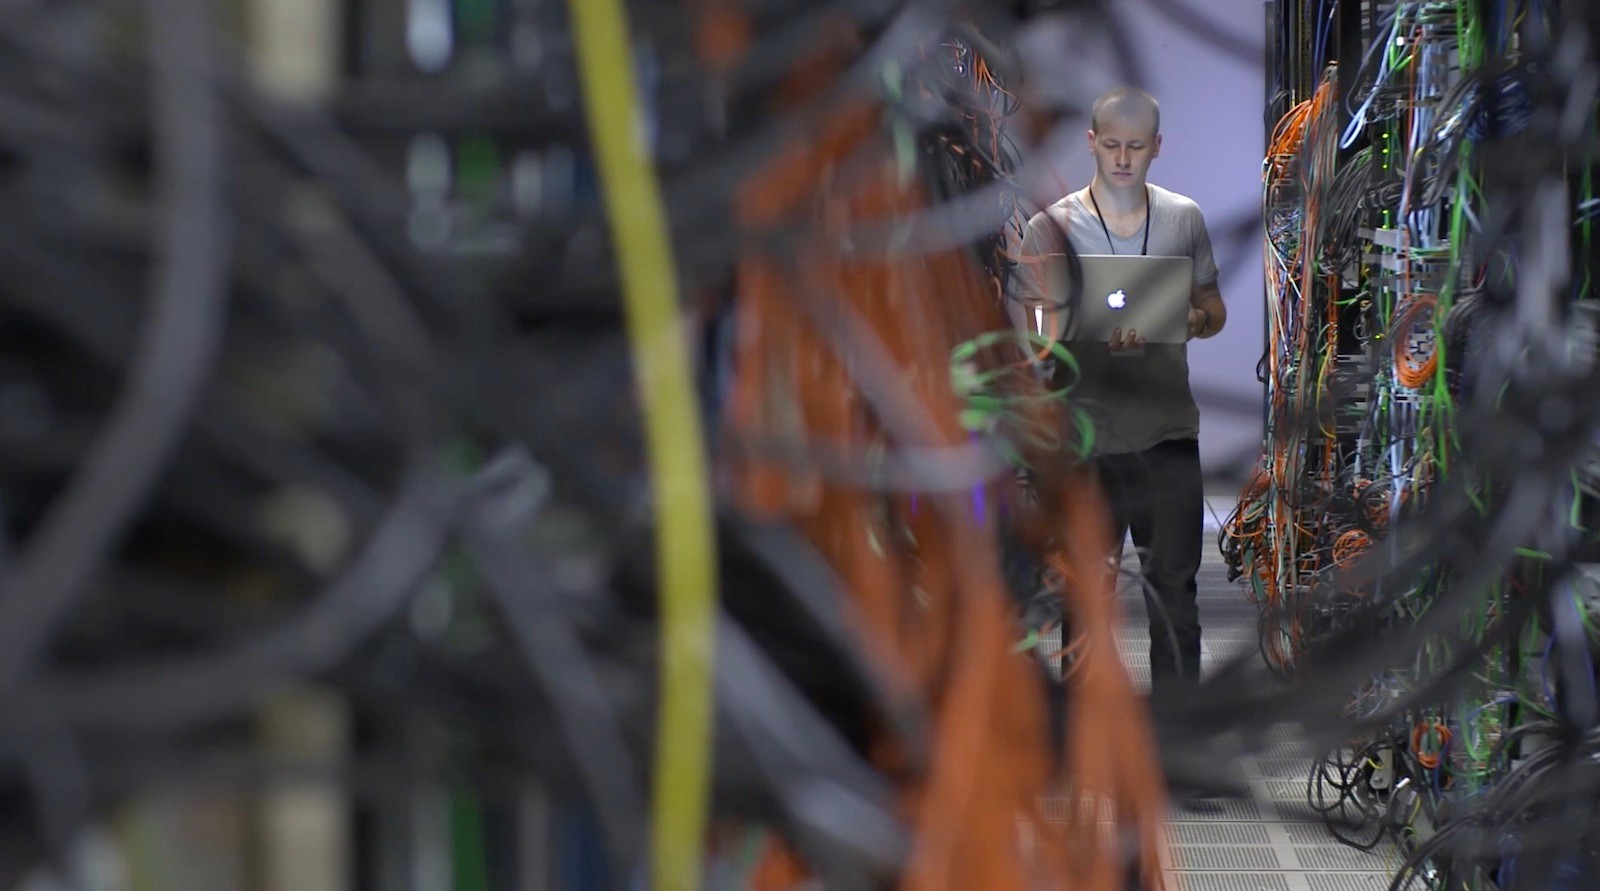 A Cisco employee is seen through cords and servers on Cisco's campus.